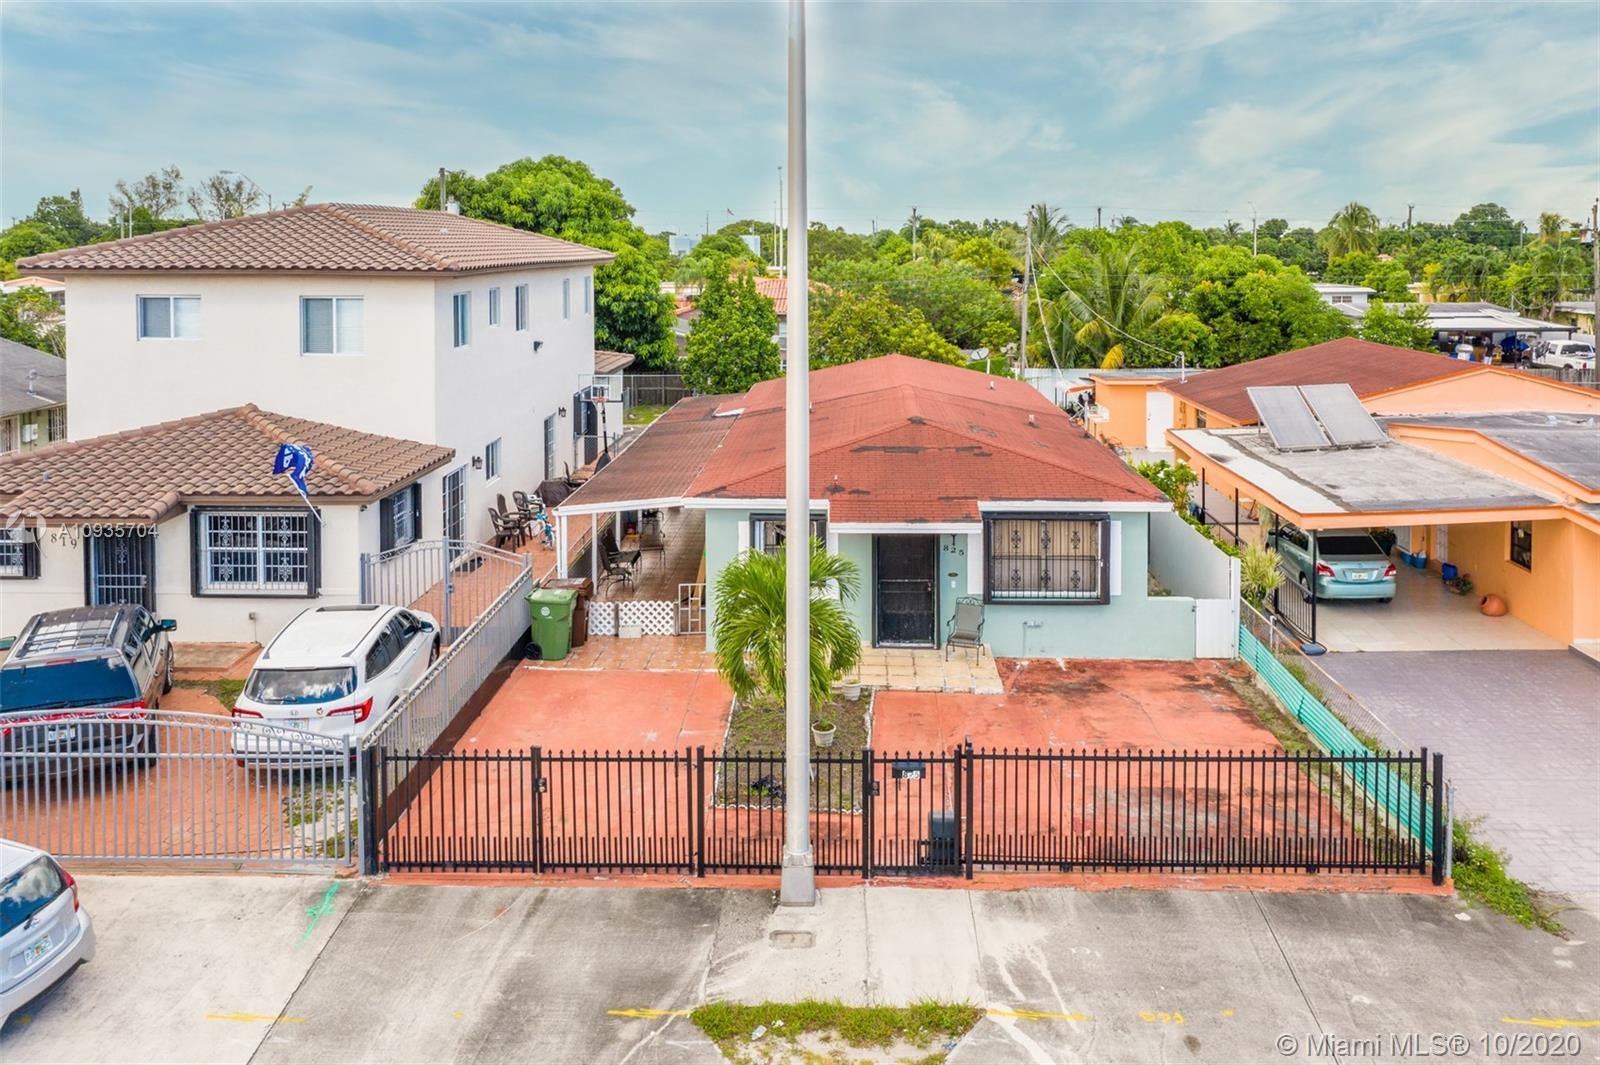 NICE LOCATION IN HIALEAH. SINGLE FAMILY HOME 4/2. The property is located in a quiet zone and has a potential for income. It is one block away from Hialeah Hospital, 5 blocks away from the Metro Rail, close to shopping centers, schools, gas stations, and minutes from Miami International Airport. The exterior of the house has an electric gate, a covered patio, and hurricane shutters, It also has a Colorado mamey tree, and a very fertile avocado tree.